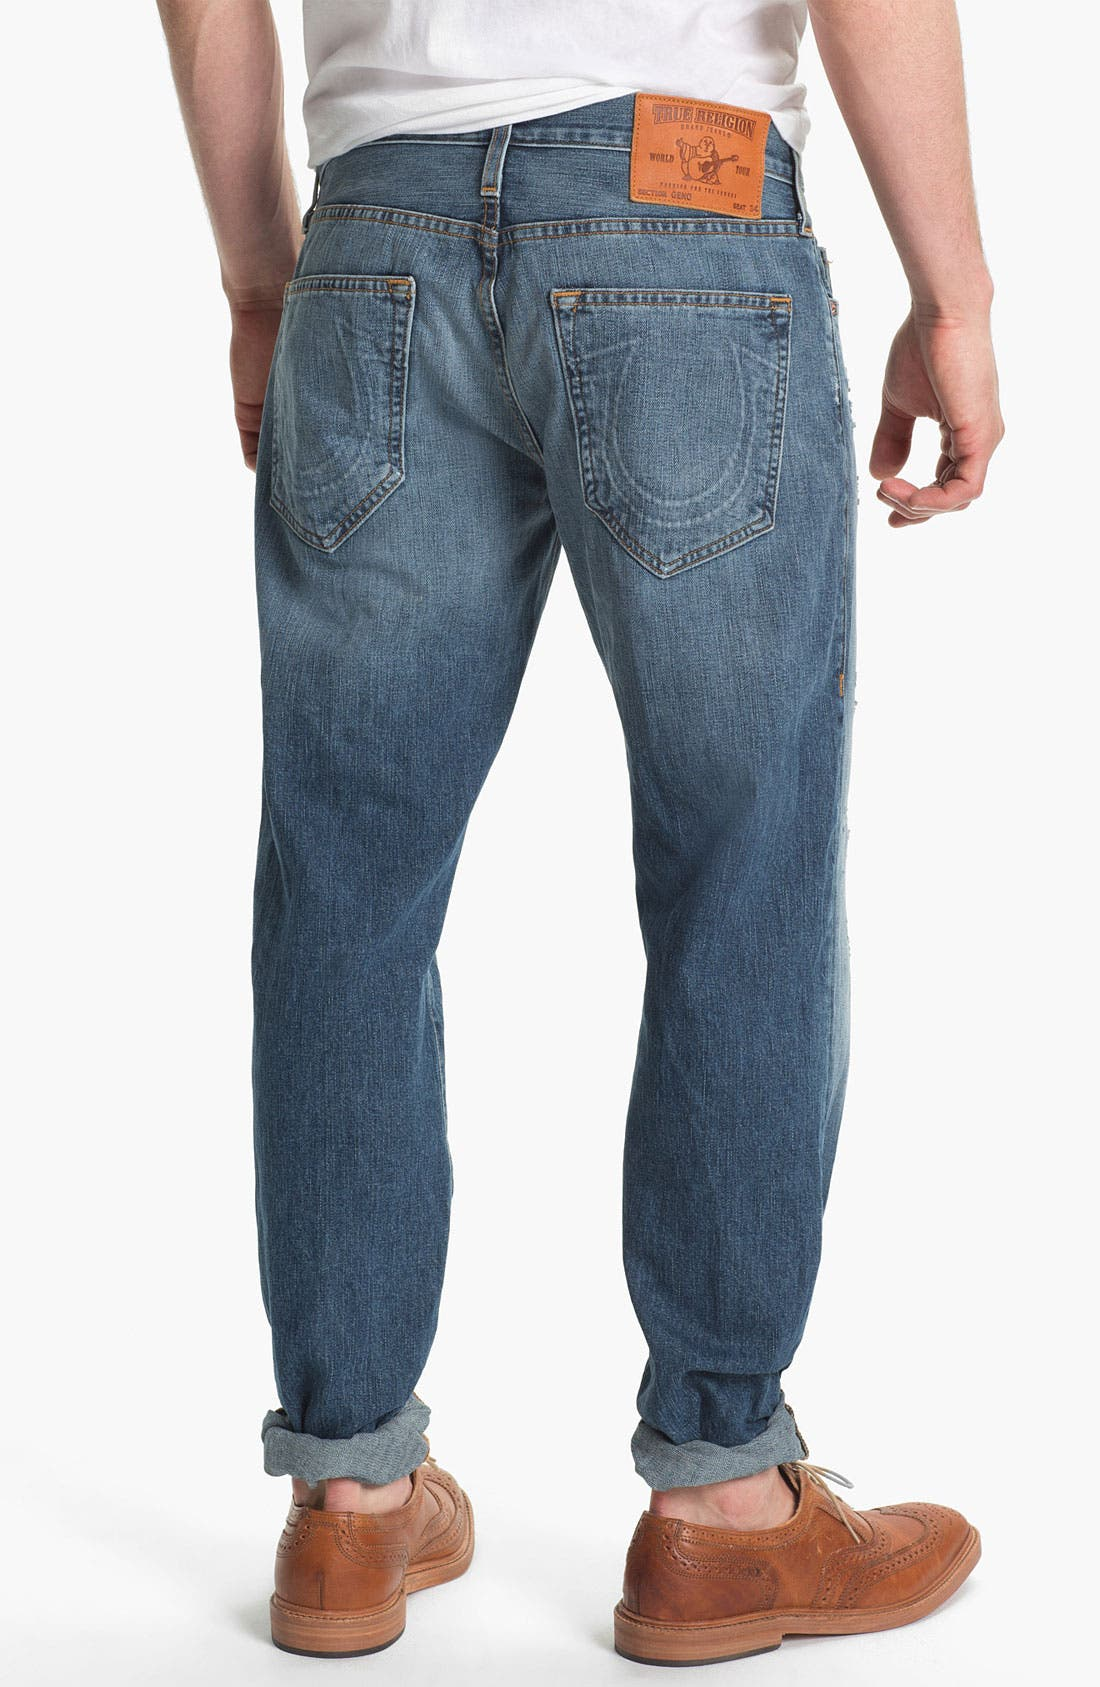 Alternate Image 1 Selected - True Religion Brand Jeans 'Geno 1971' Slim Straight Leg Jeans (Sepulvada)